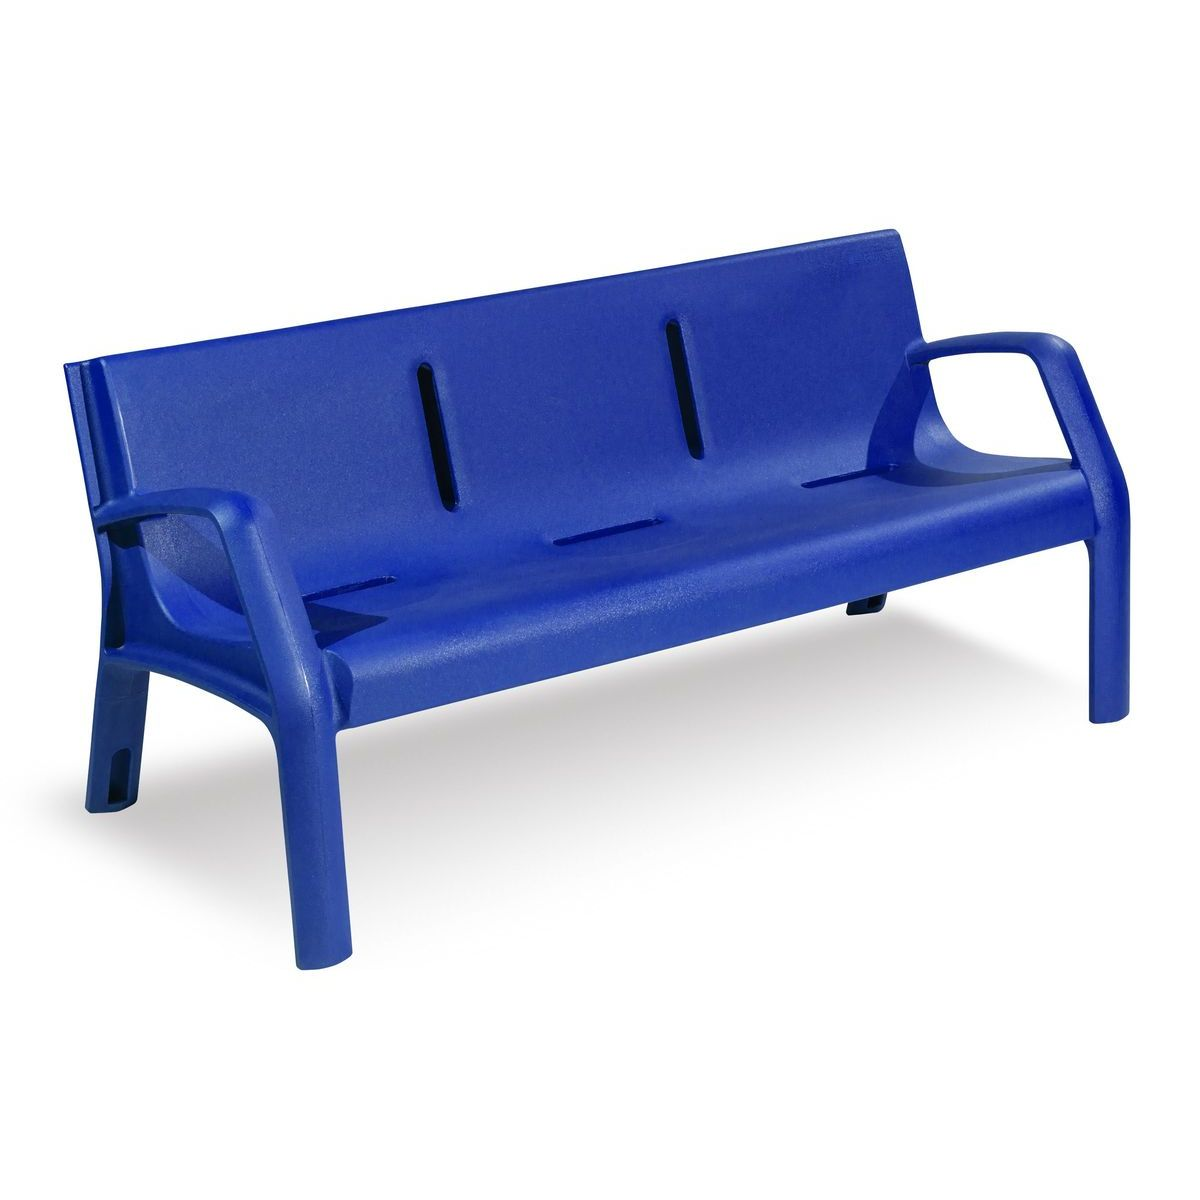 Alvium Bench Blue C-1017-5005